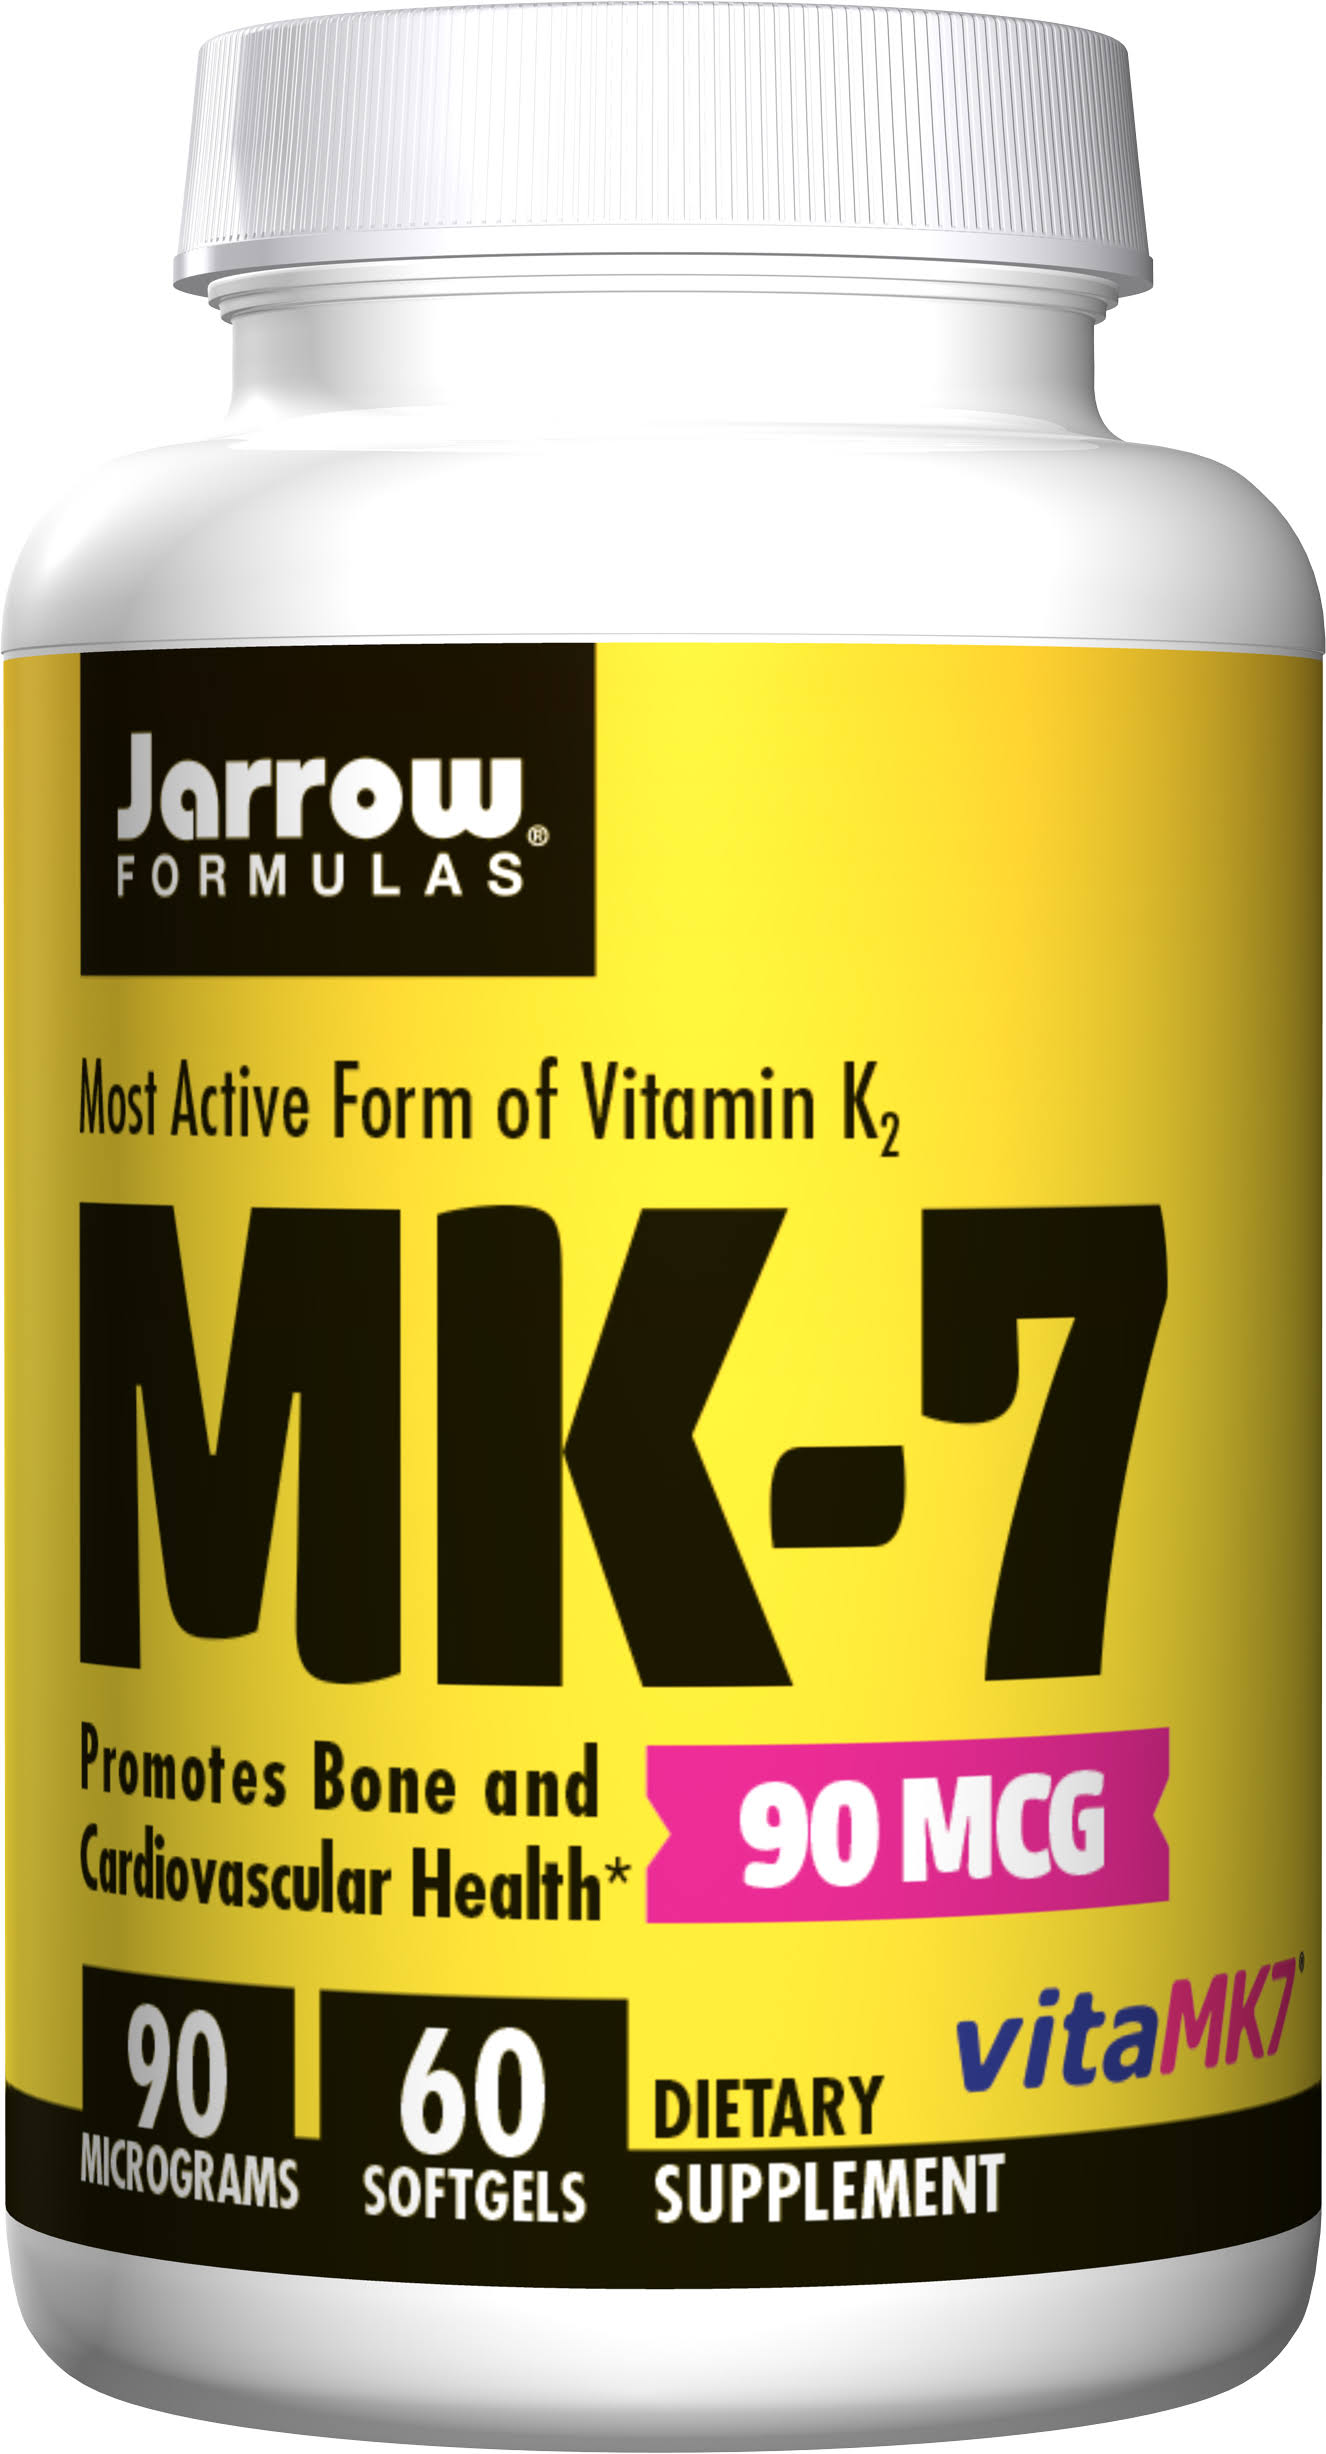 Jarrow Formulas Vitamin K-2 as MK-7 Supplement - 60 Softgels